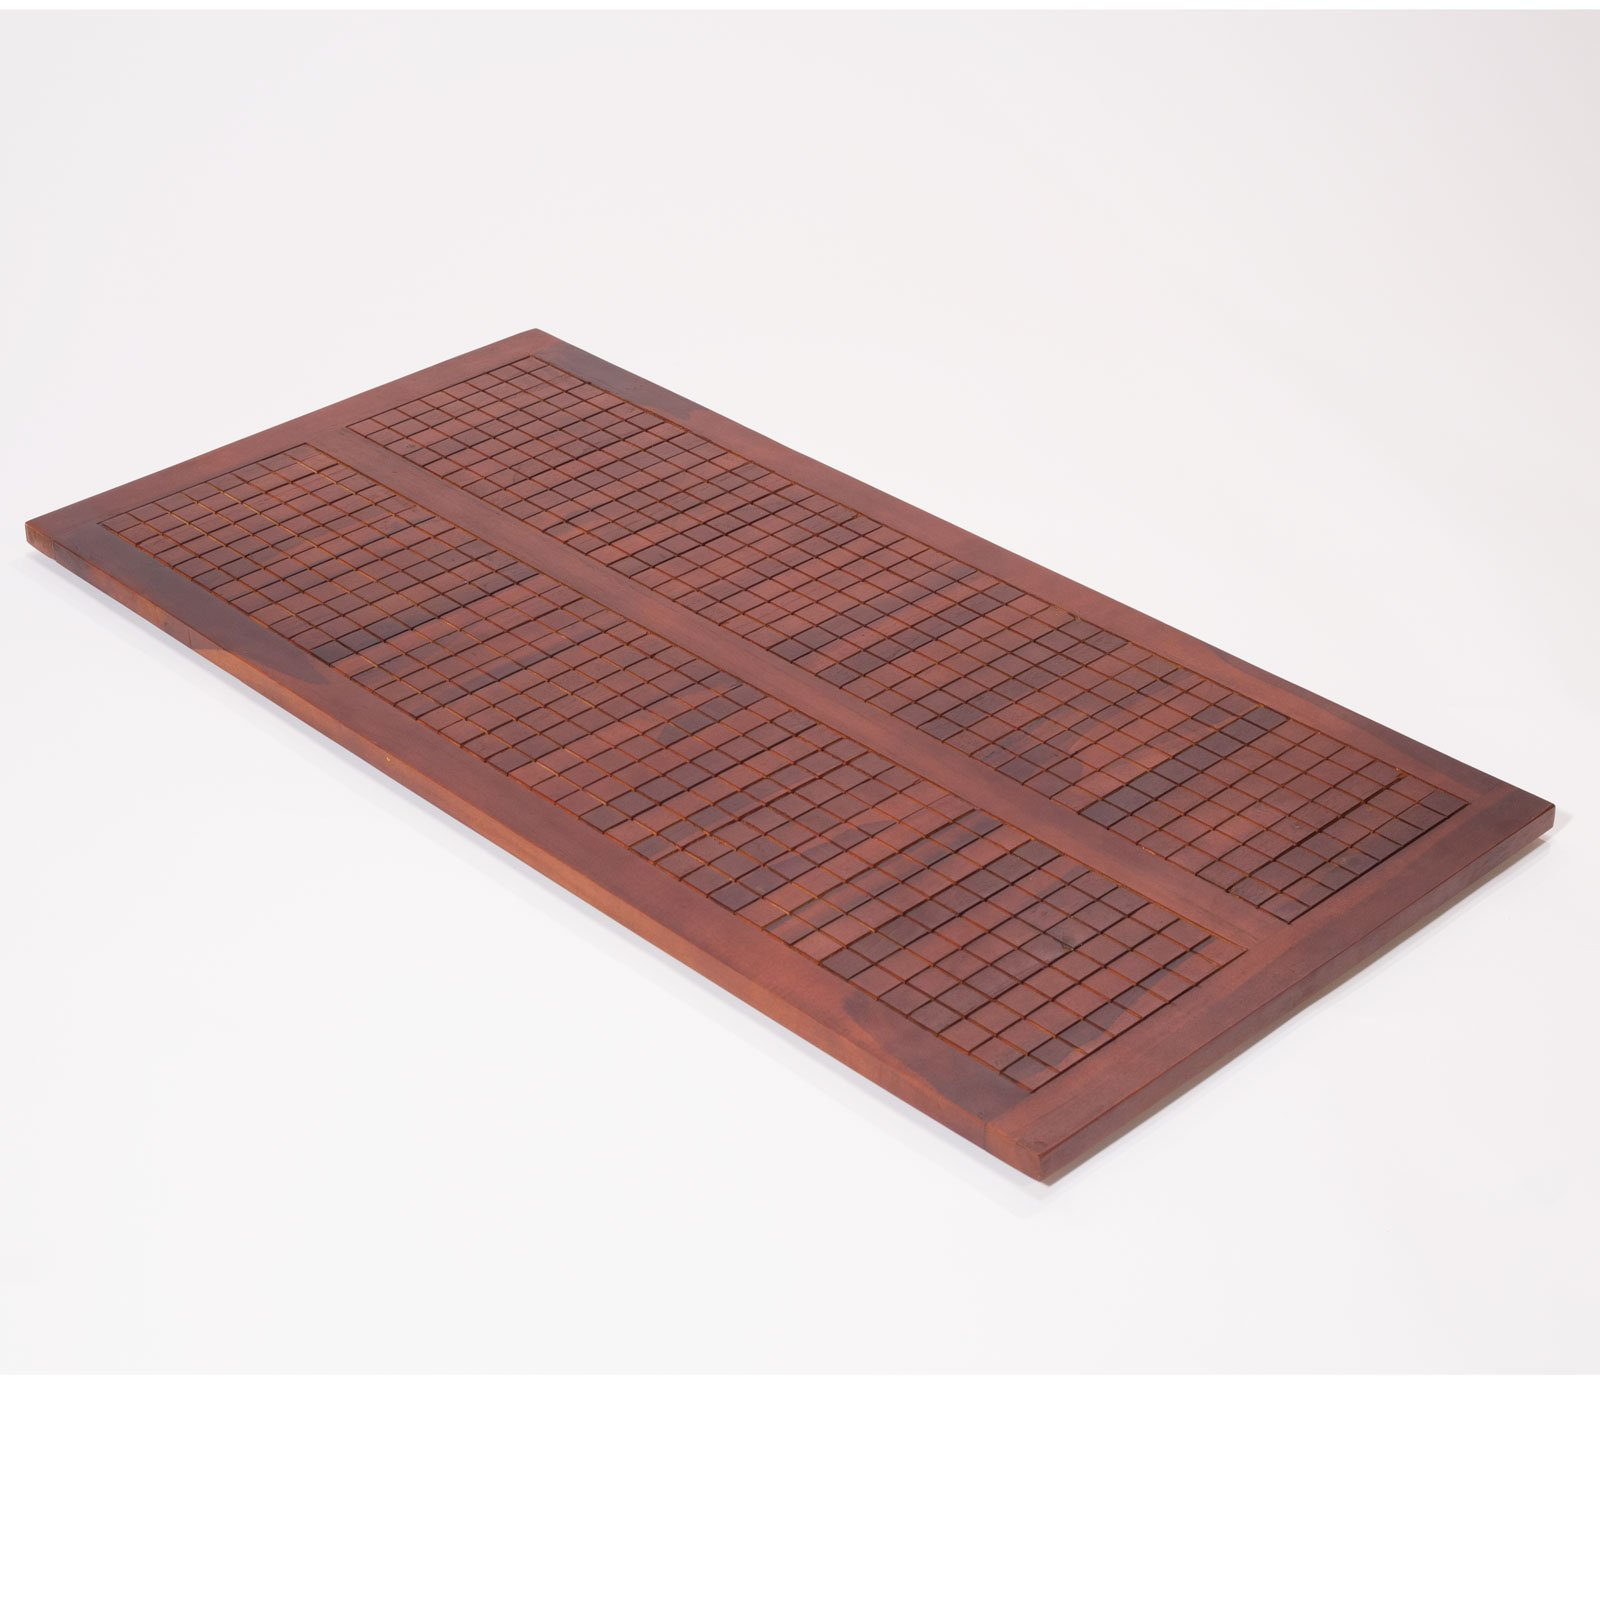 40'' X 20'' Non Slip Teak Shower Floor Bath Bathroom Mat by Decoteak (Image #6)